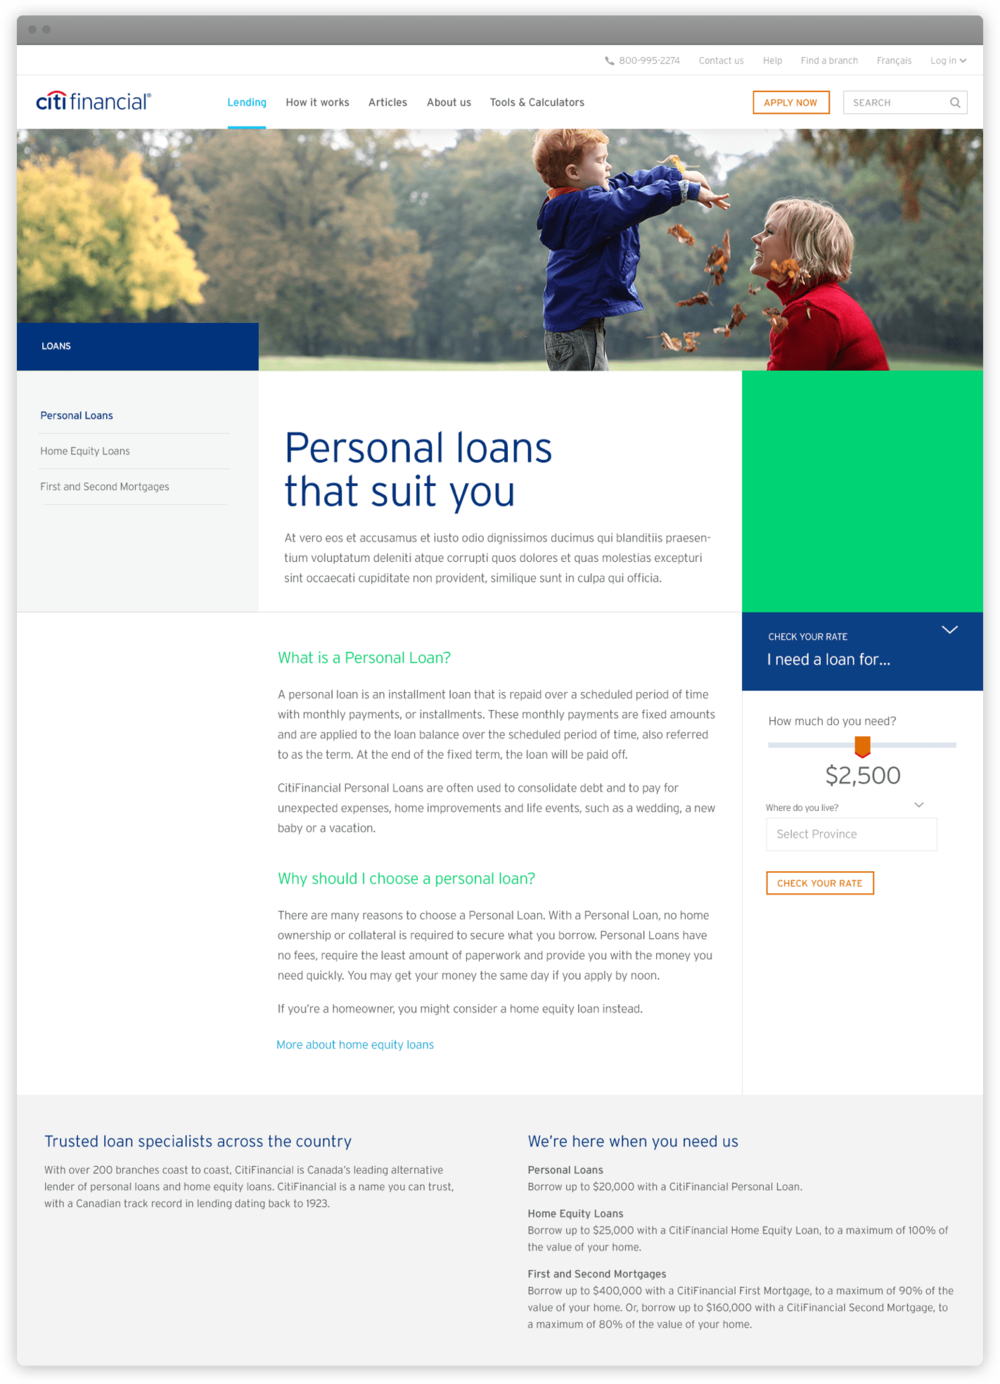 CitiFinancial_Design_Play_9.png